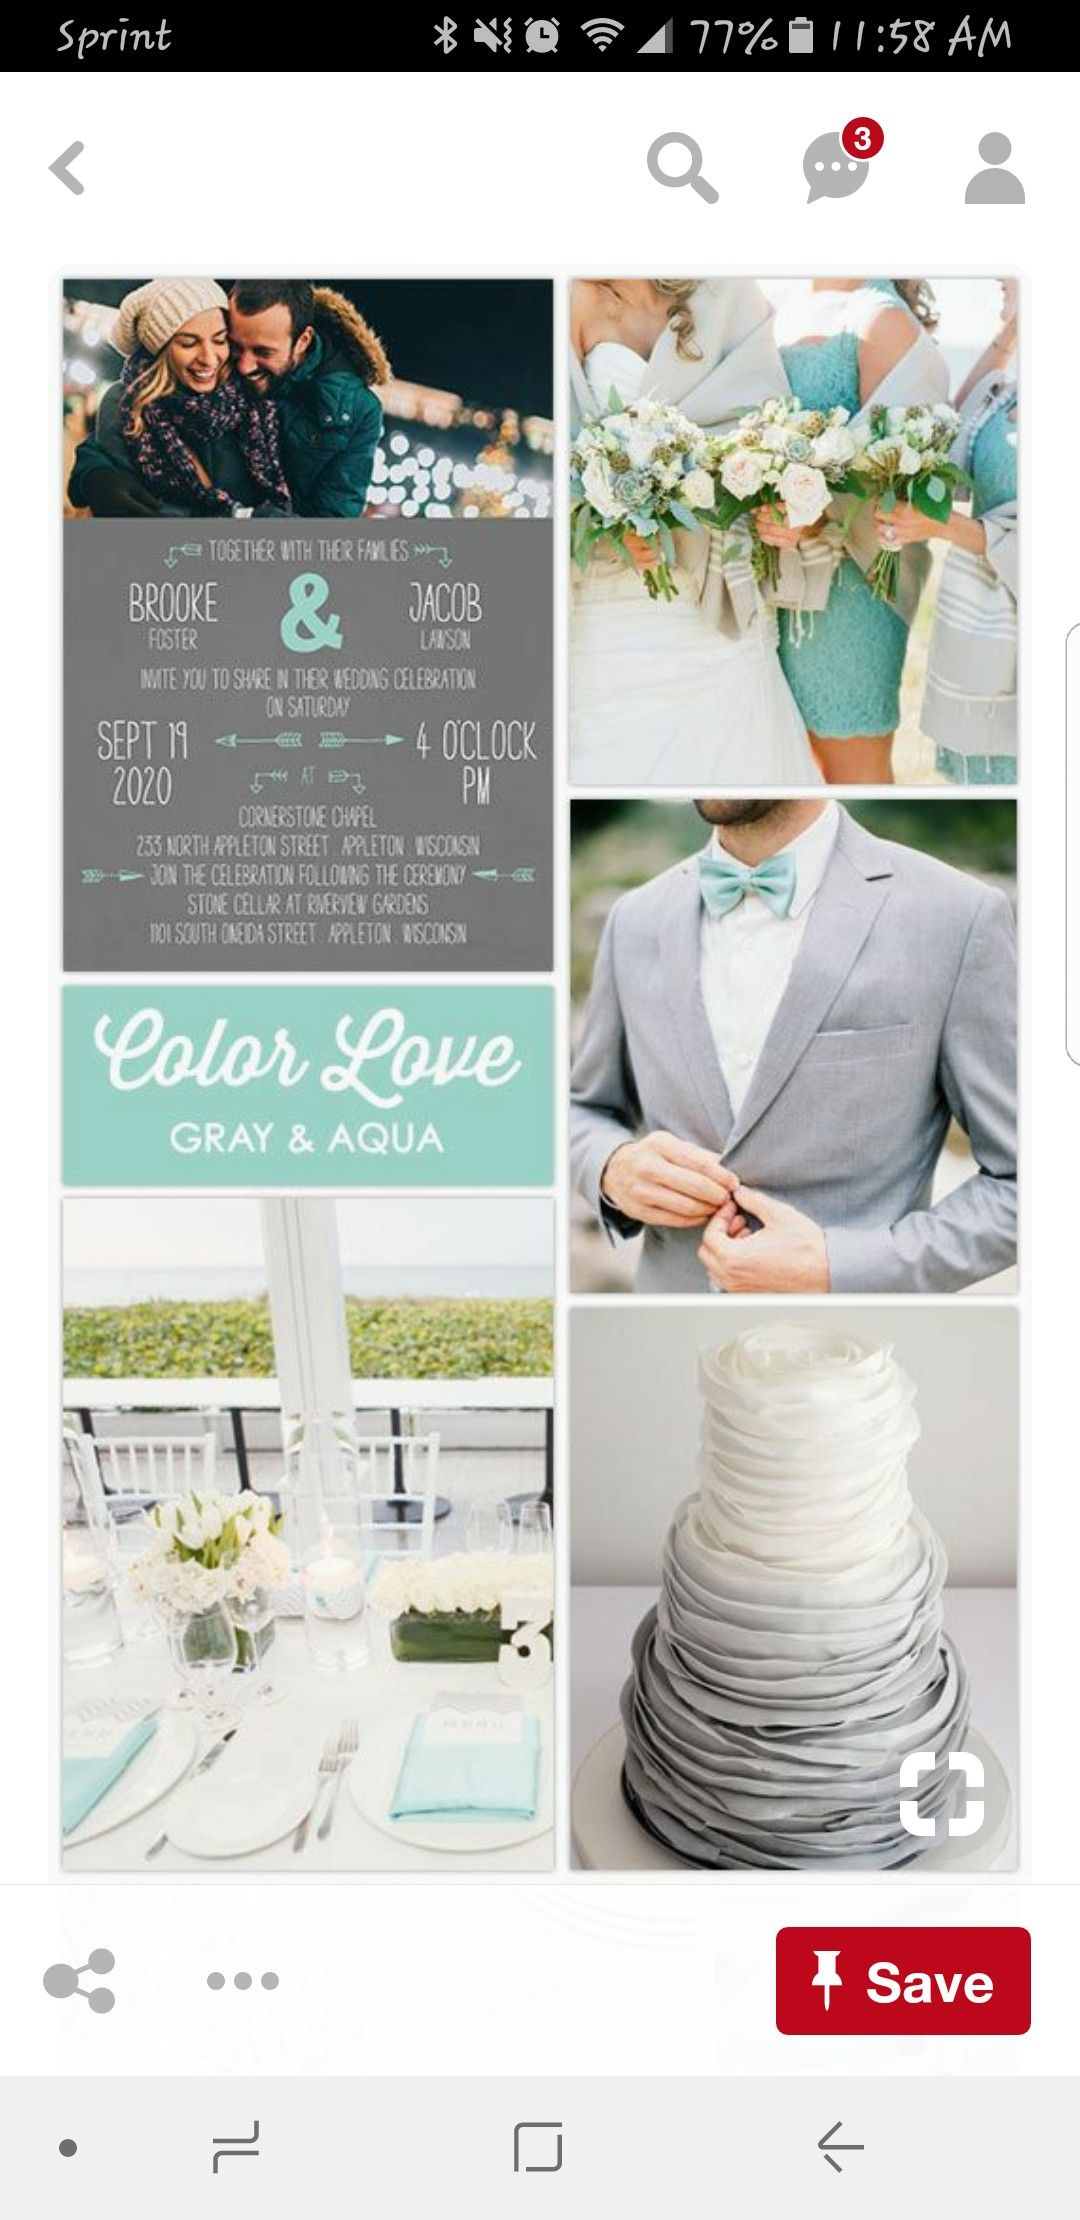 Wedding colors for a beach wedding  Pin by Mona Hanley on Wedding  Pinterest  Wedding